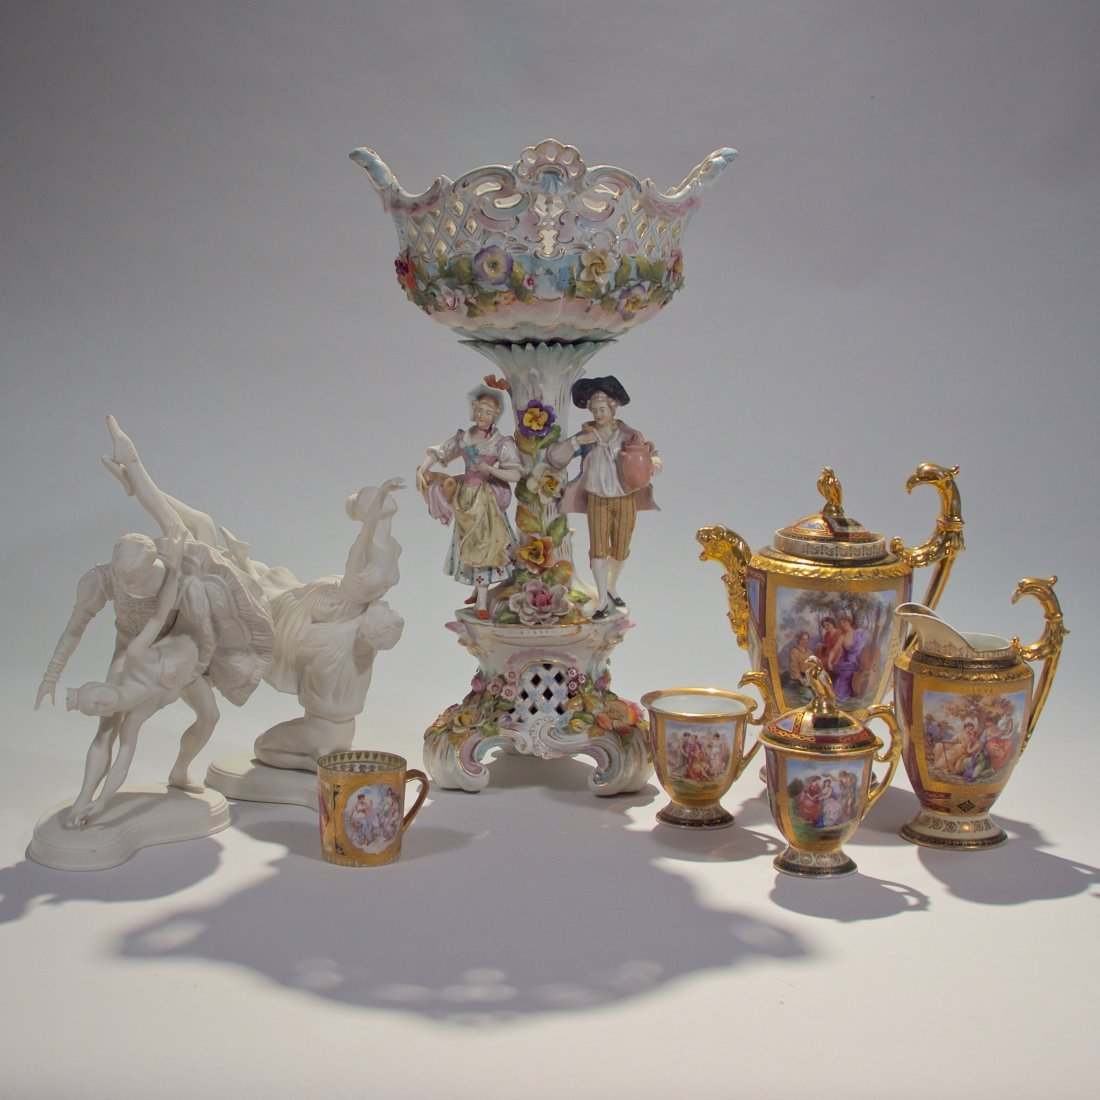 Grouping of Porcelain Objects